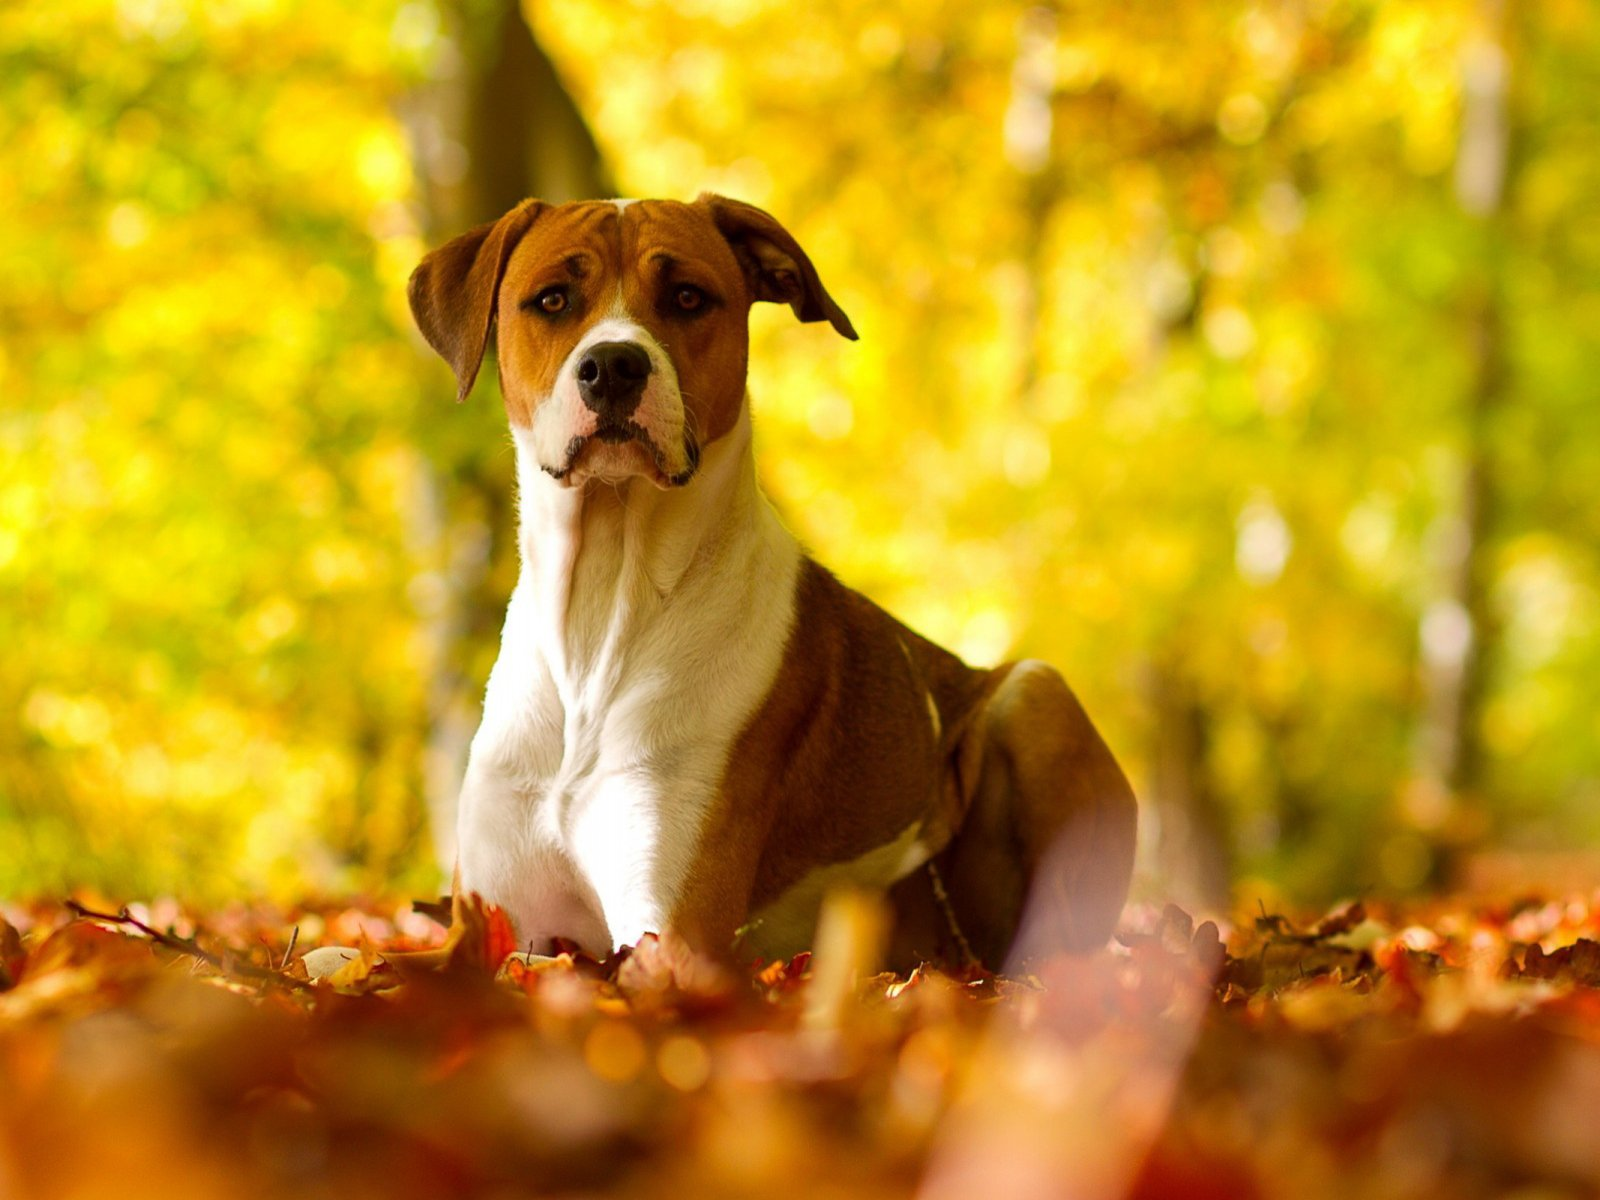 Fall Wallpaper With Dogs Images Pictures   Becuo 1600x1200